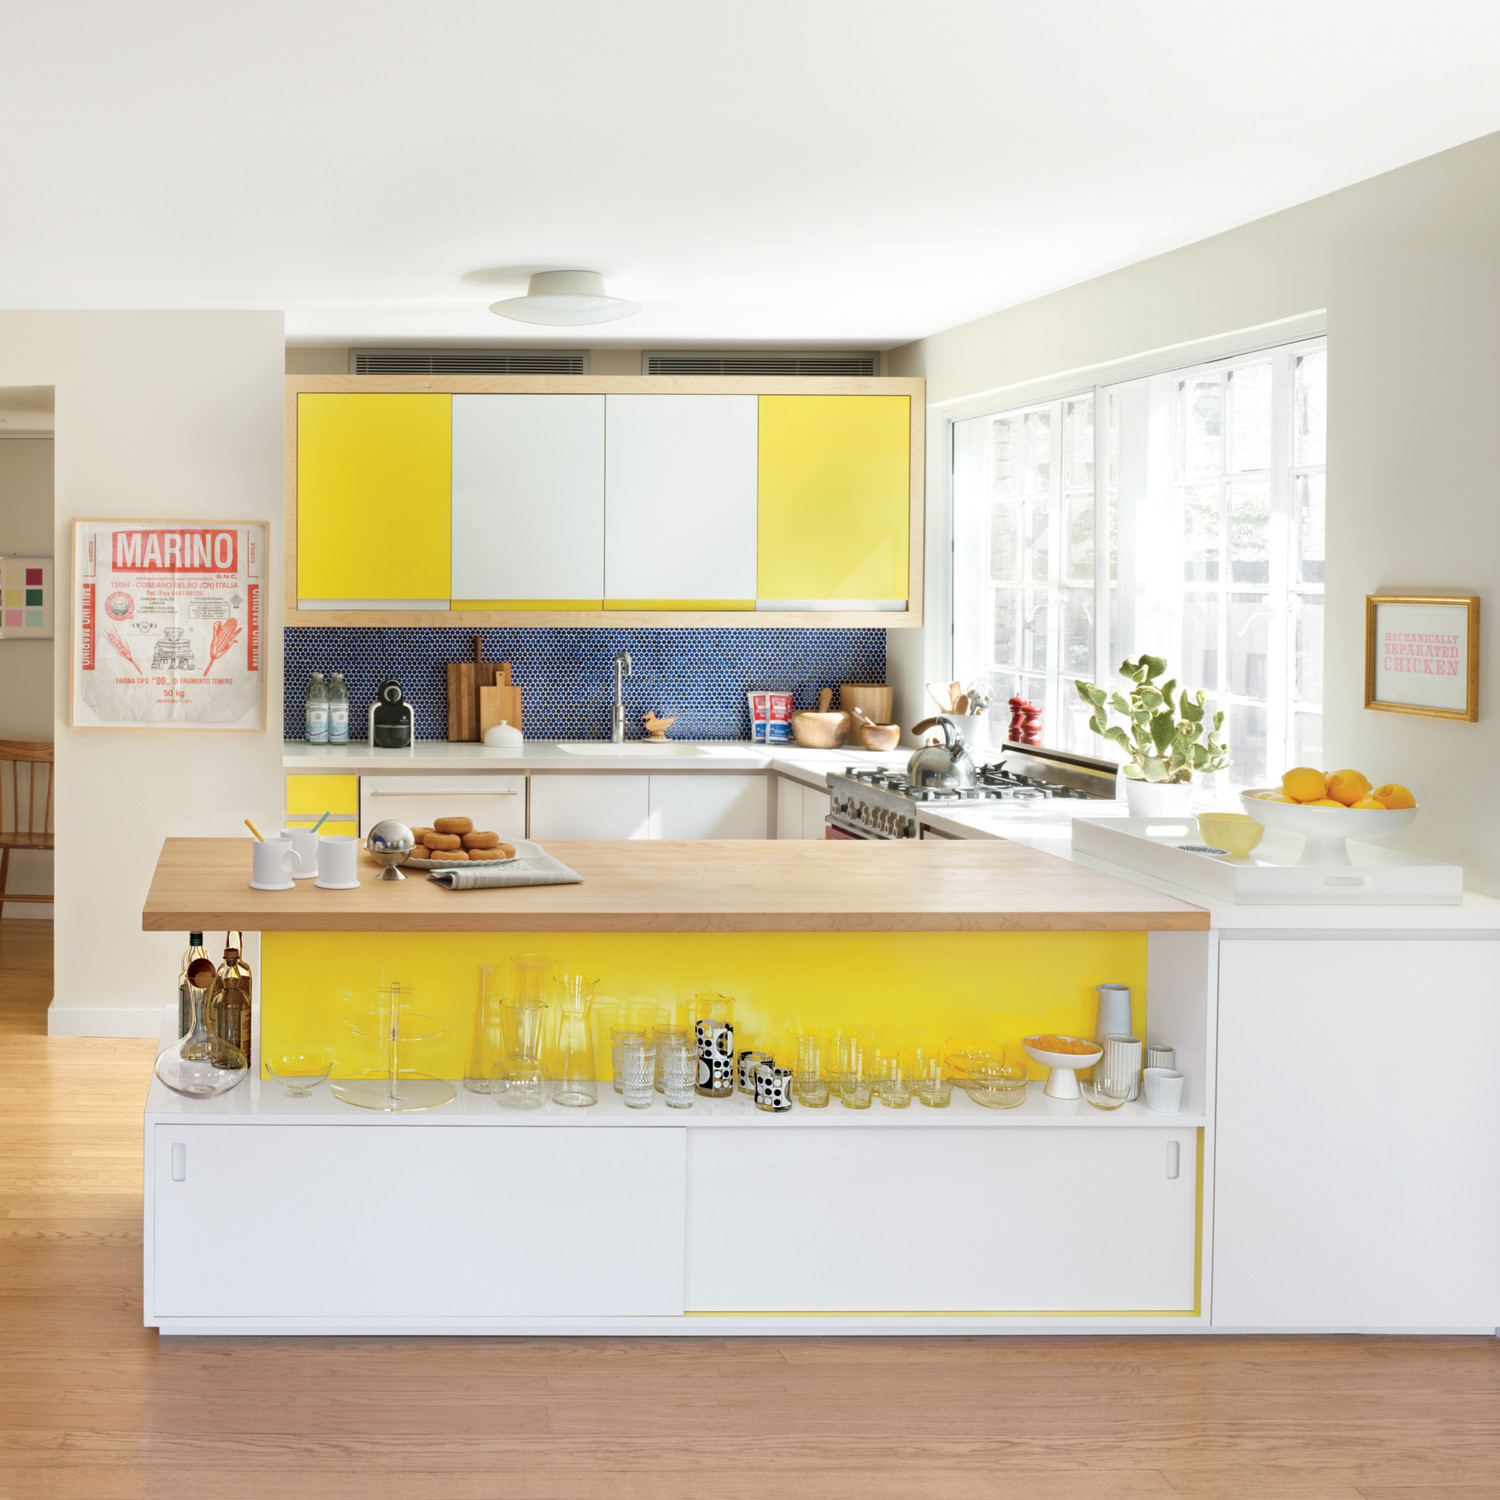 annie-schlechter-kitchen-bold-color-mld107949_sq